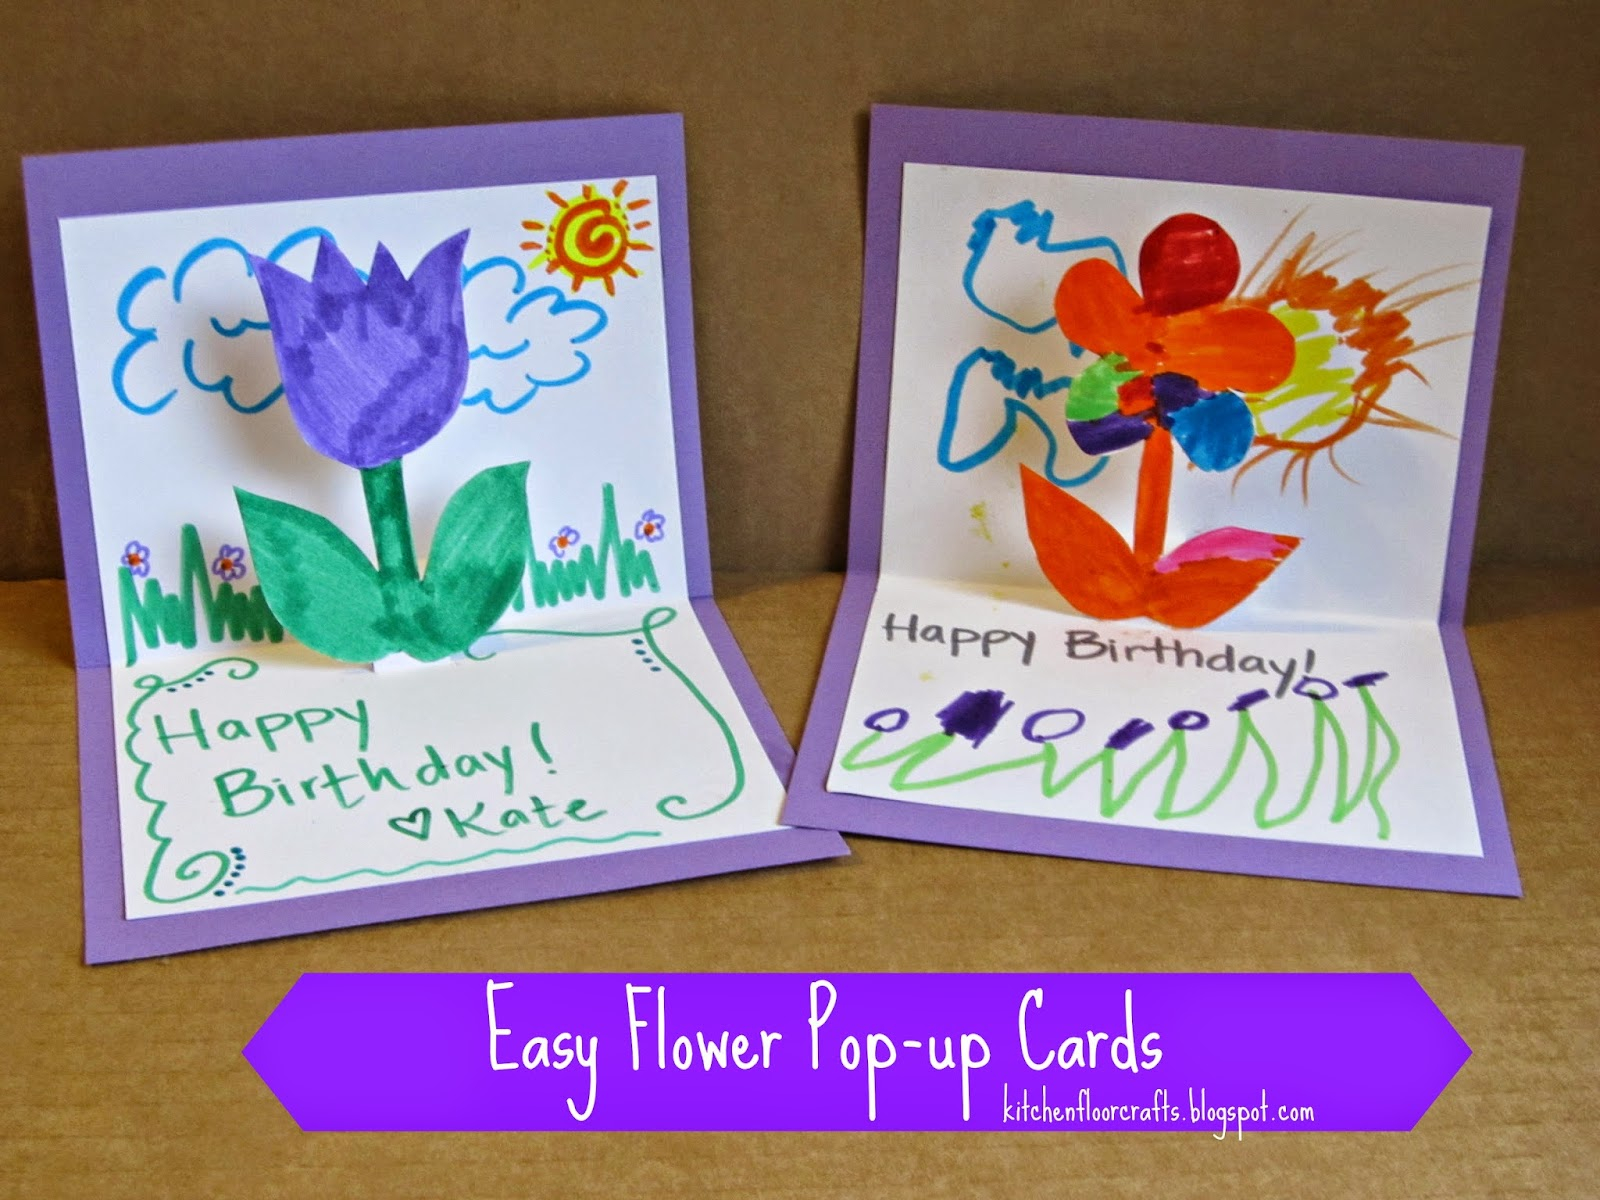 Easy Birthday Card Ideas For Kids Funny Homemade Birthday For Mom Card Ideas From Daughter Envelopes